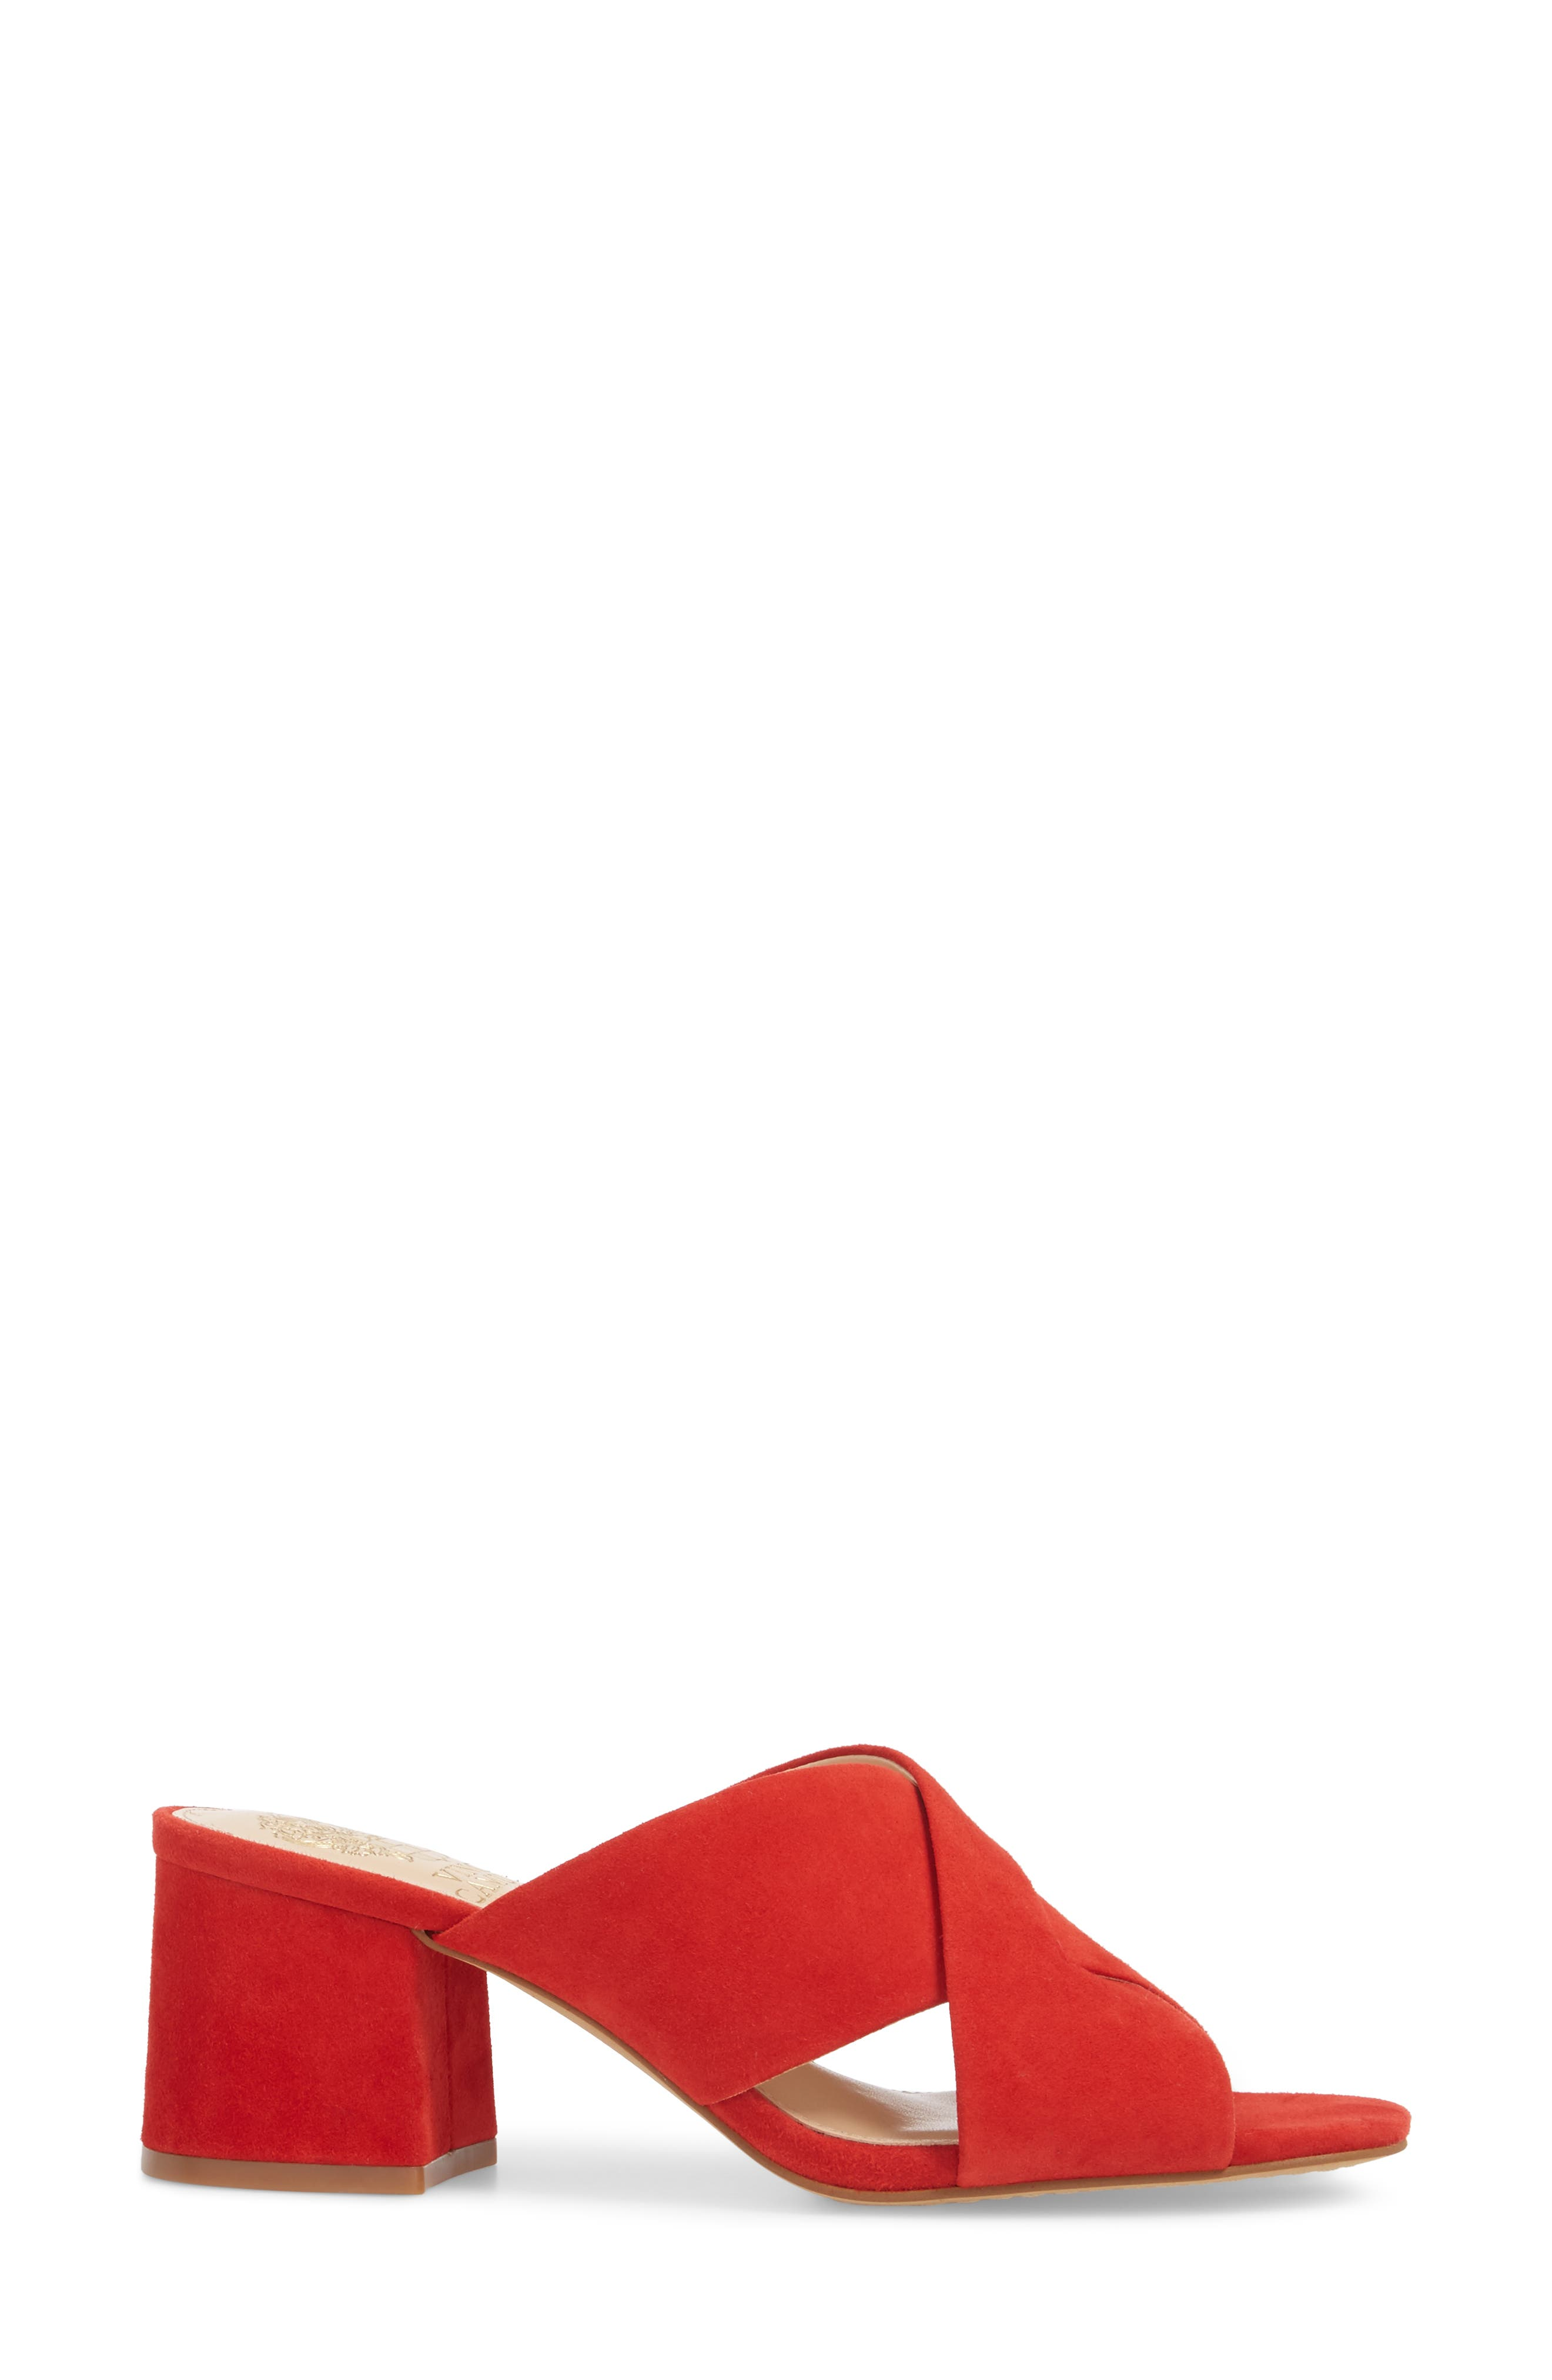 Stania Sandal,                             Alternate thumbnail 3, color,                             RED HOT RIO SUEDE